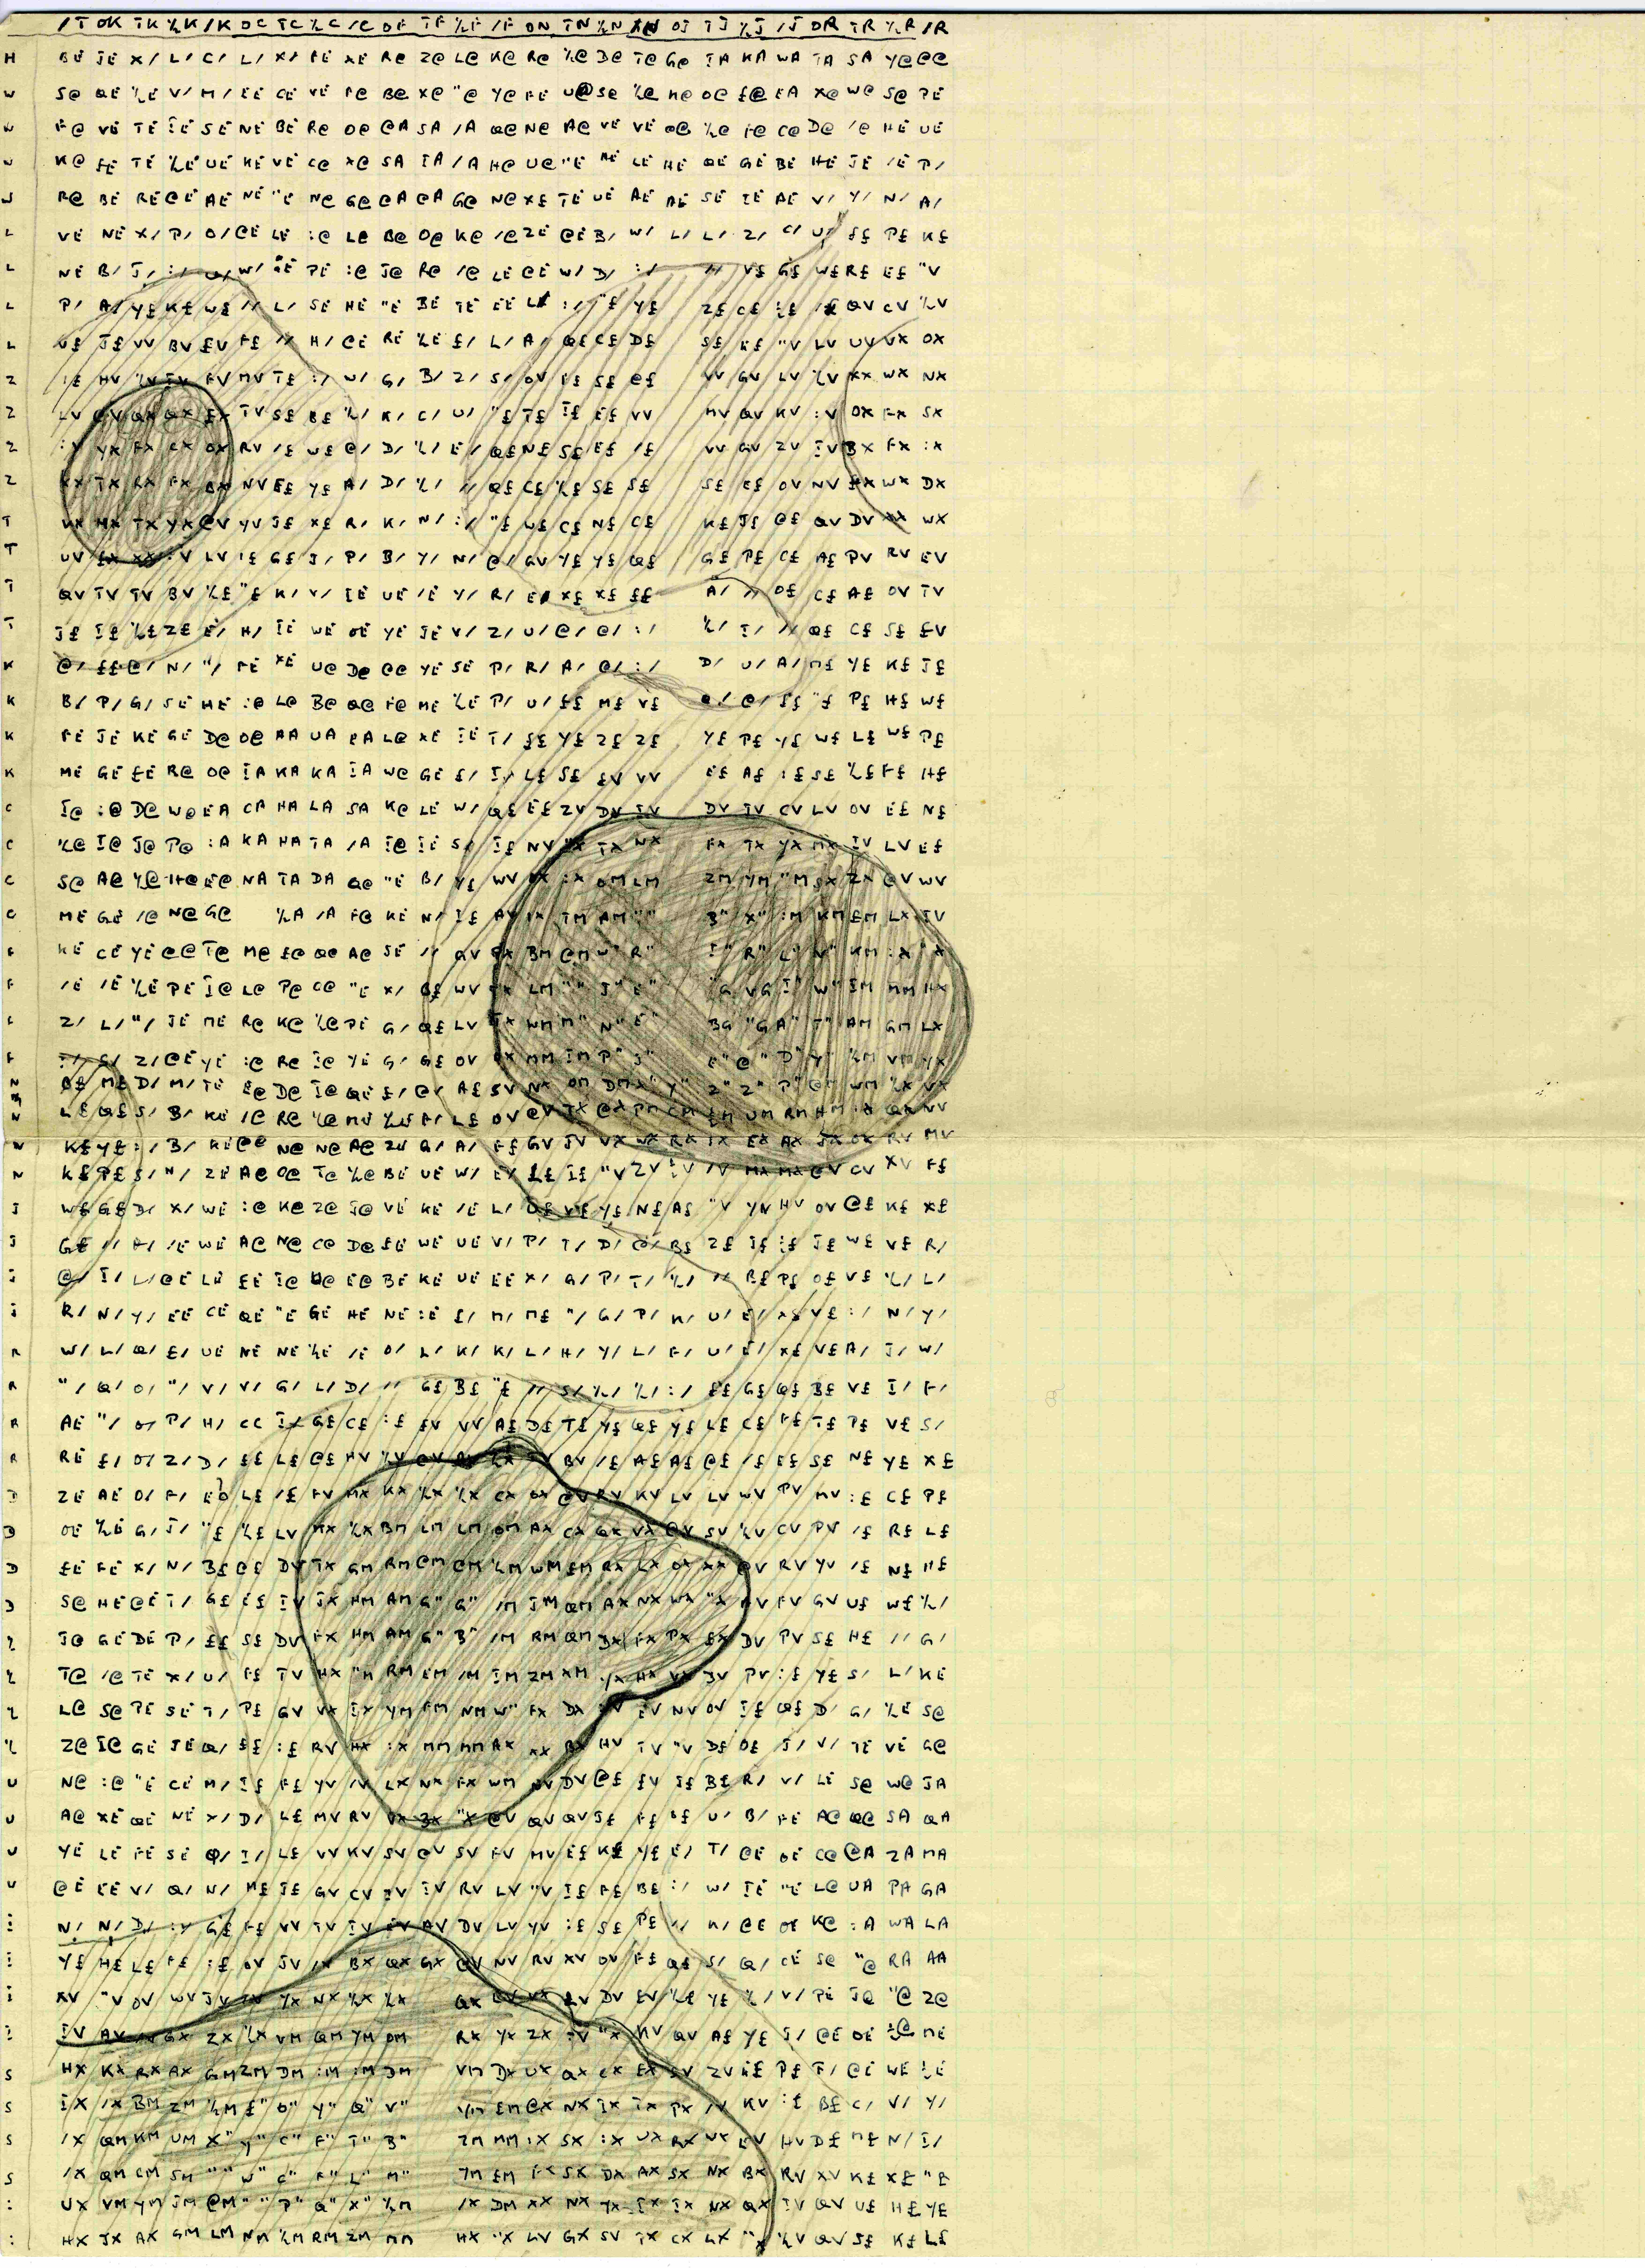 Diagram drawn by Turing showing how a stream of information, in this case a stream of symbol pairs, might generate spots as on the skin of a toad. The rules he used for spot generation and for generating the stream of symbols are not known.  [AMT K/3/11]